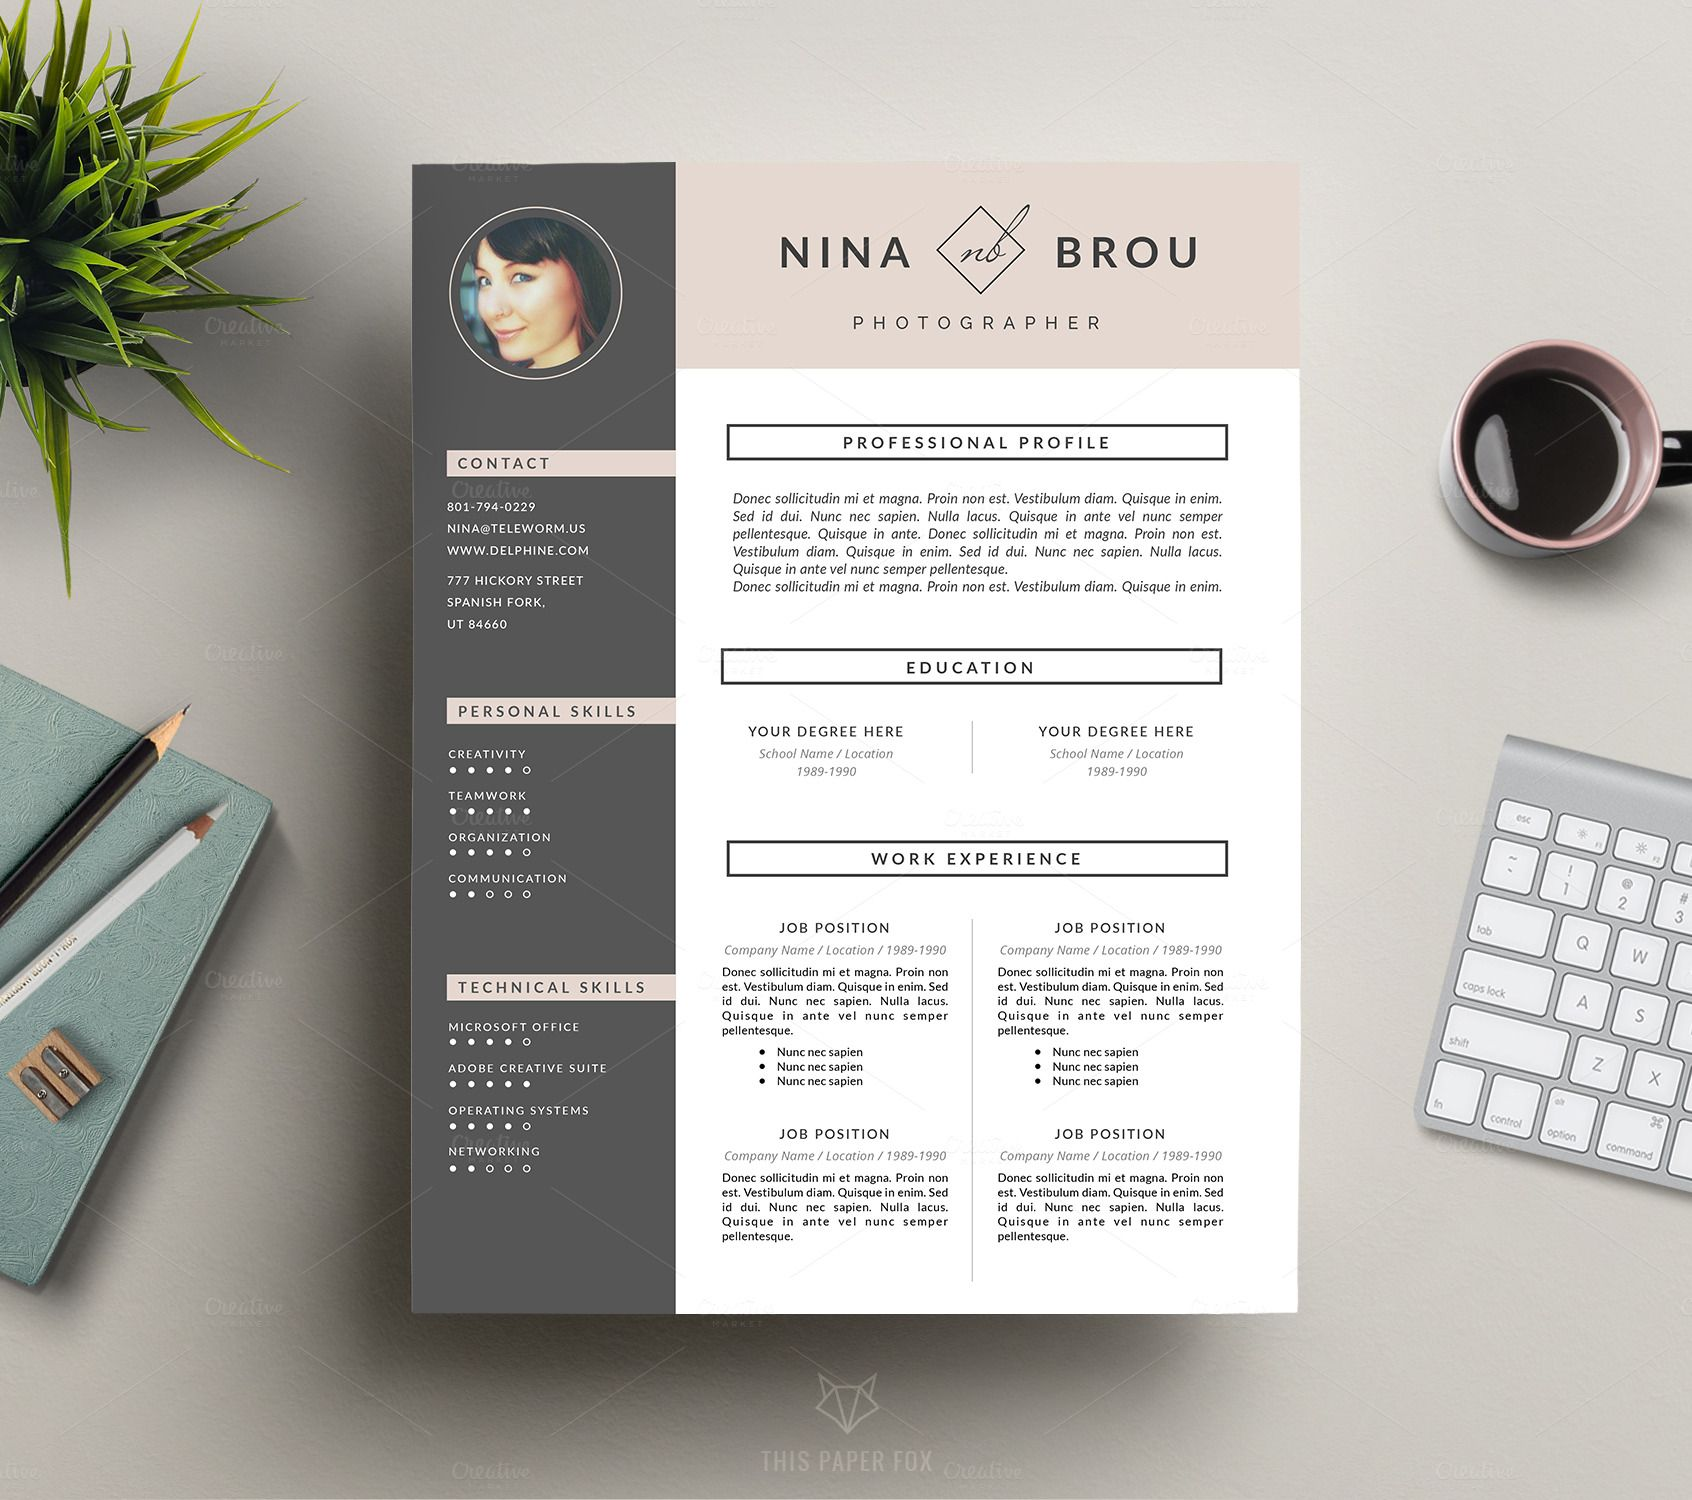 Check out Feminine Resume Design Feminine Resume